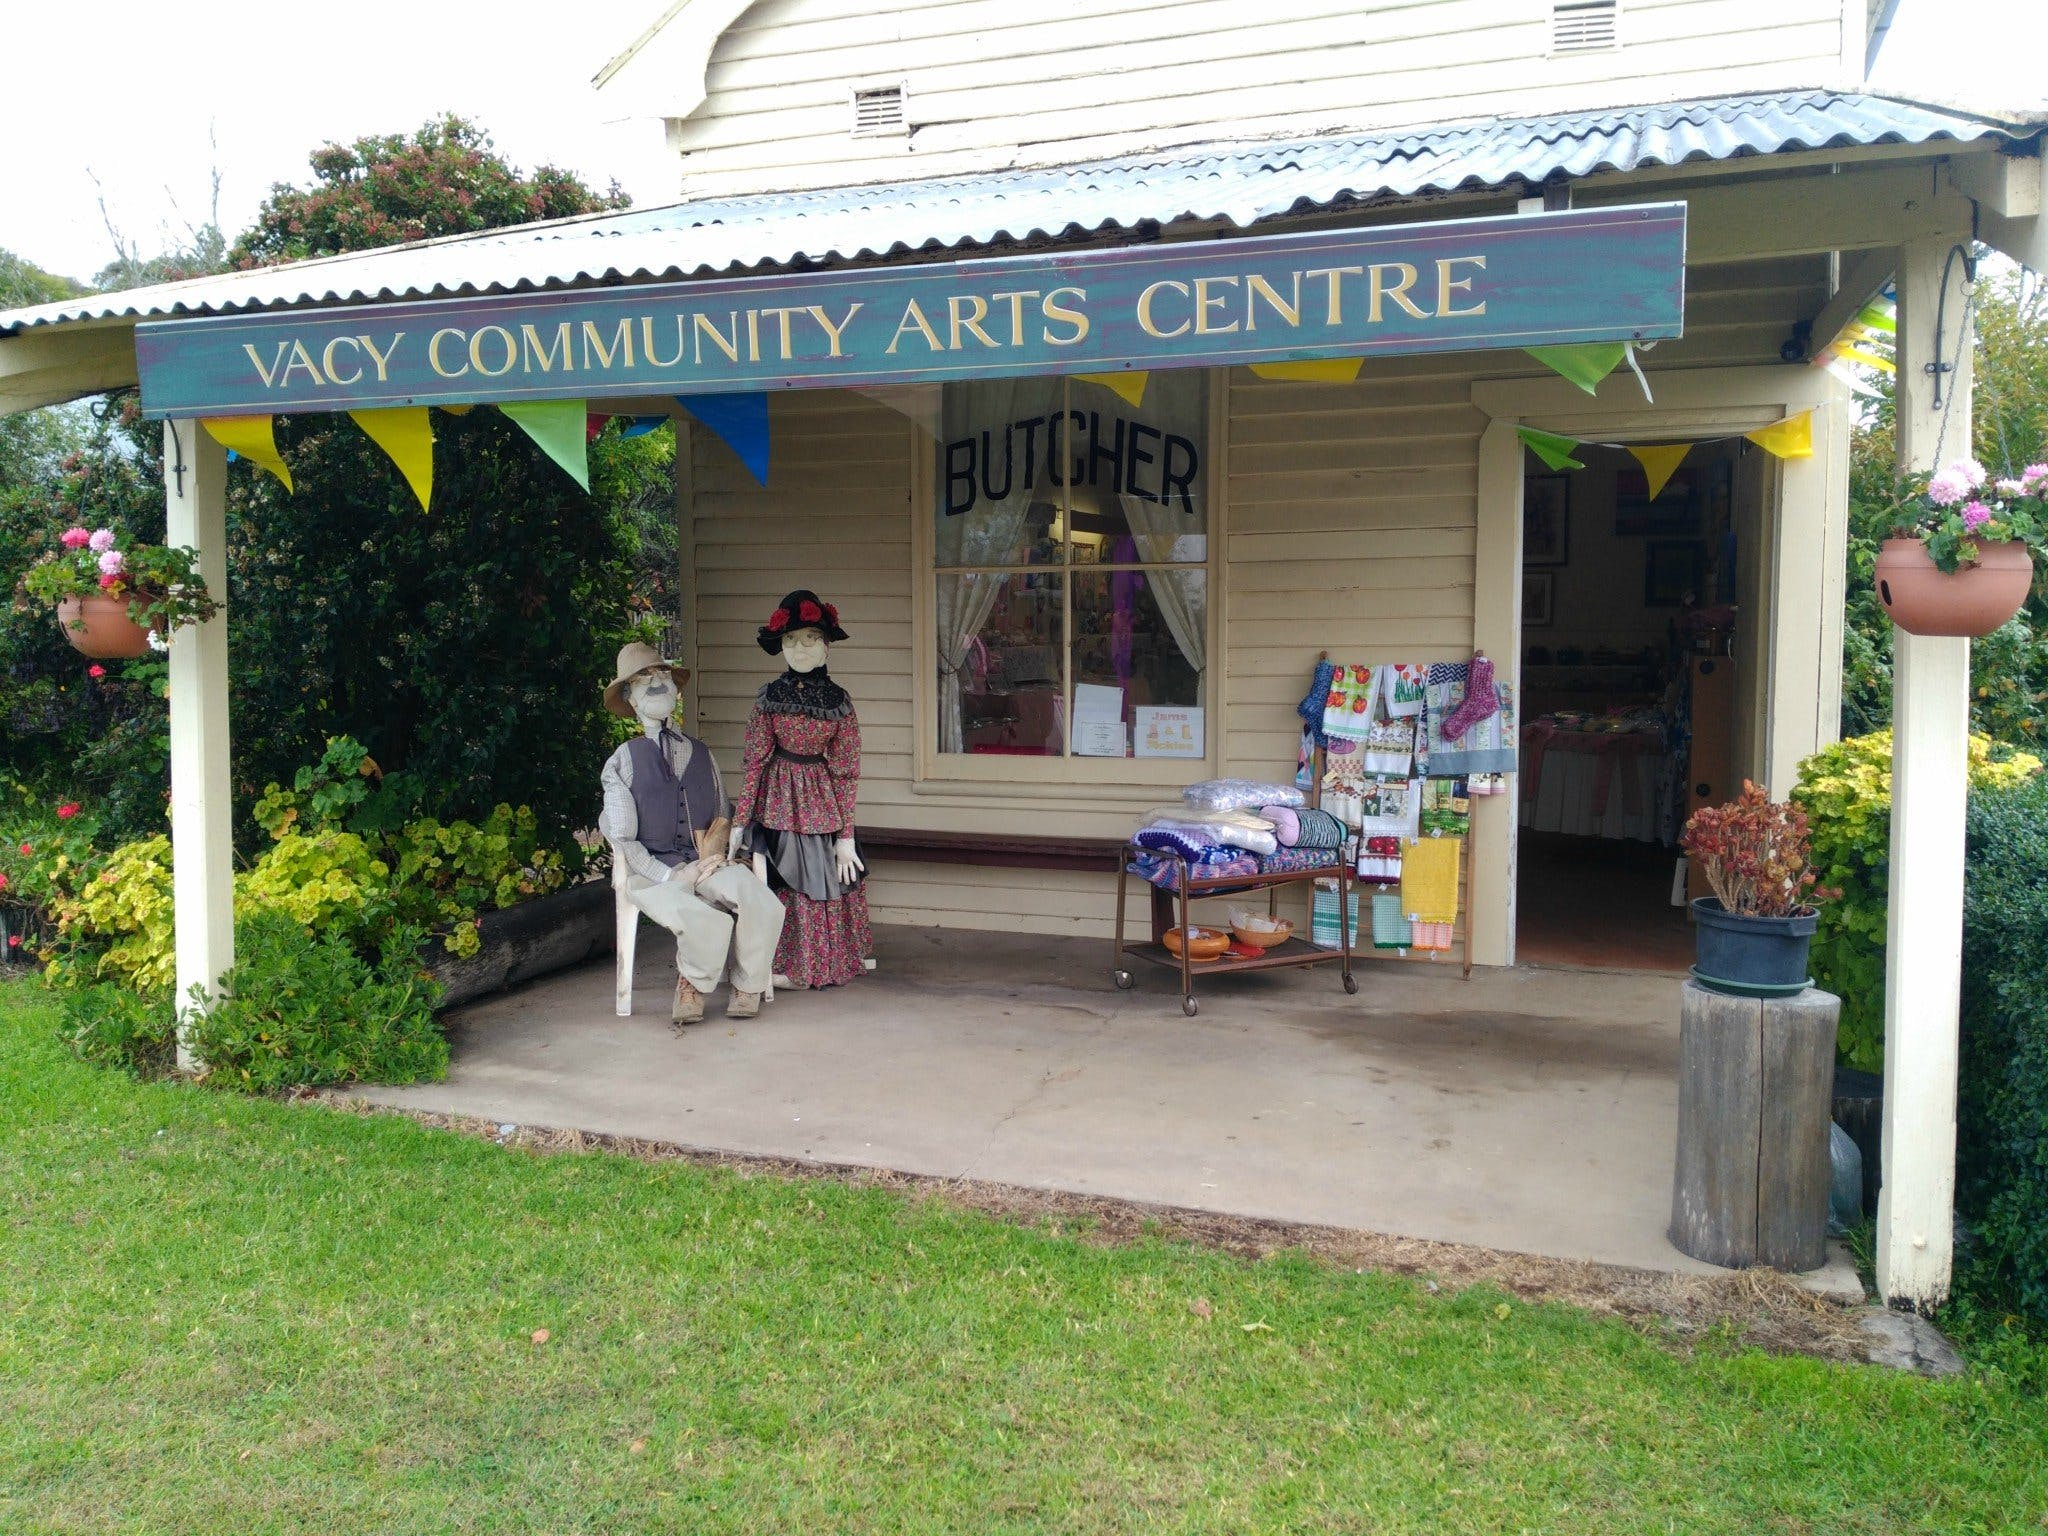 Vacy Community Arts Centre - Geraldton Accommodation